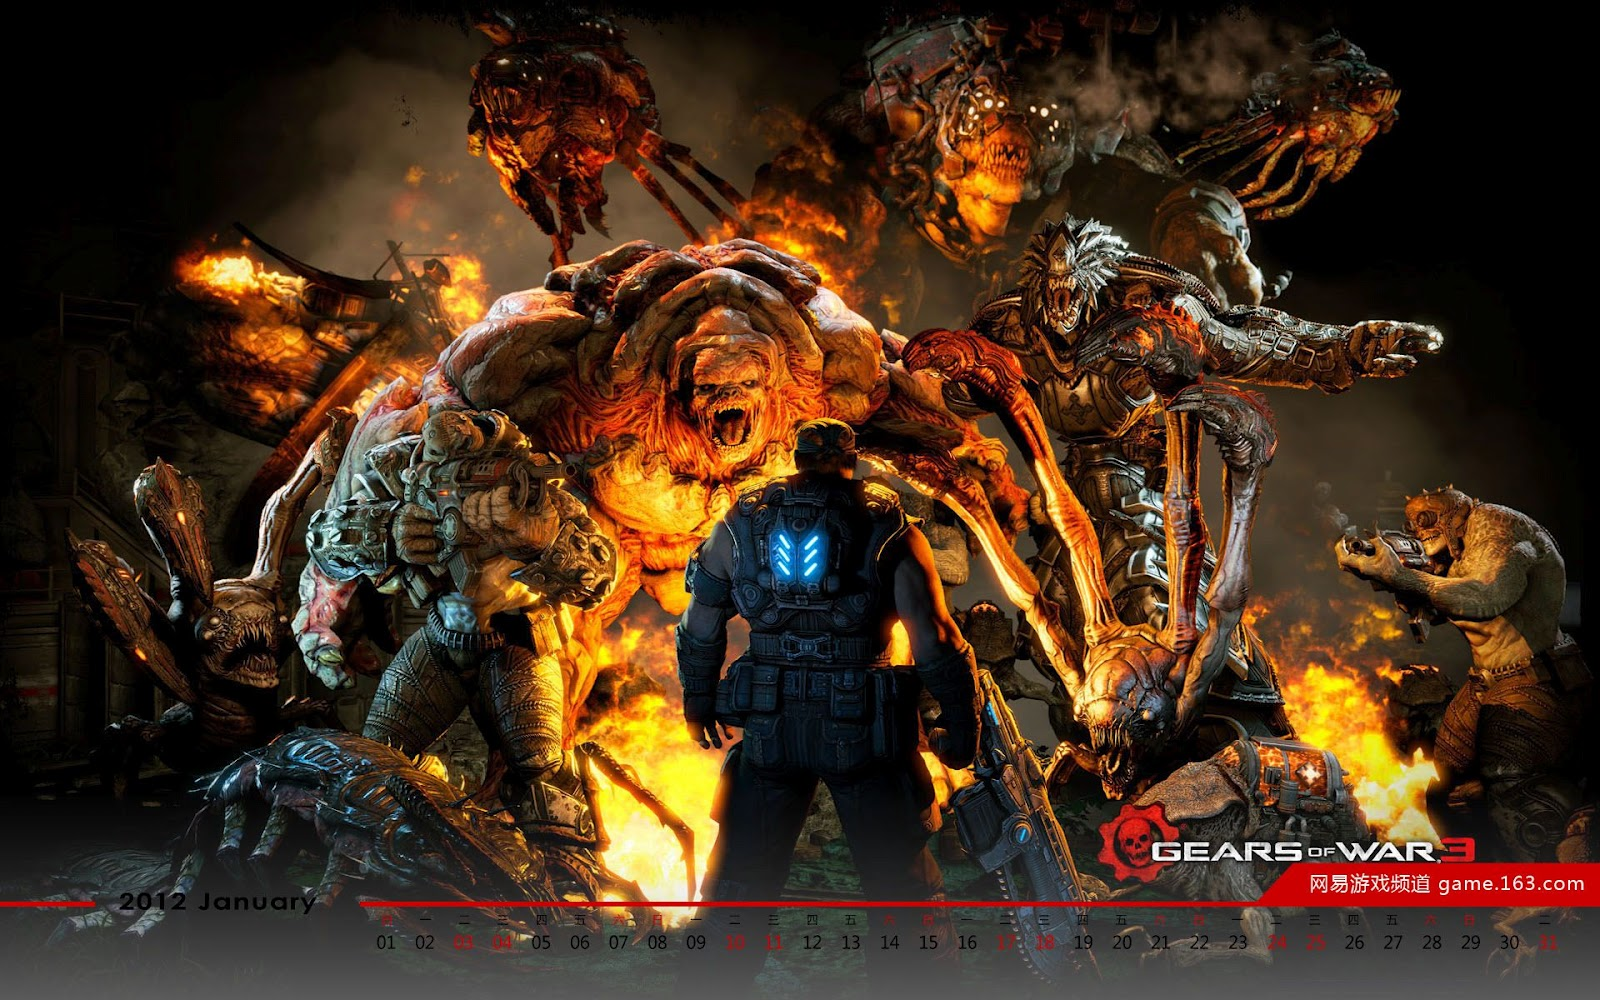 Xbox Wallpapers and Backgrounds Xbox UK - gears of war 3 xbox game wallpapers